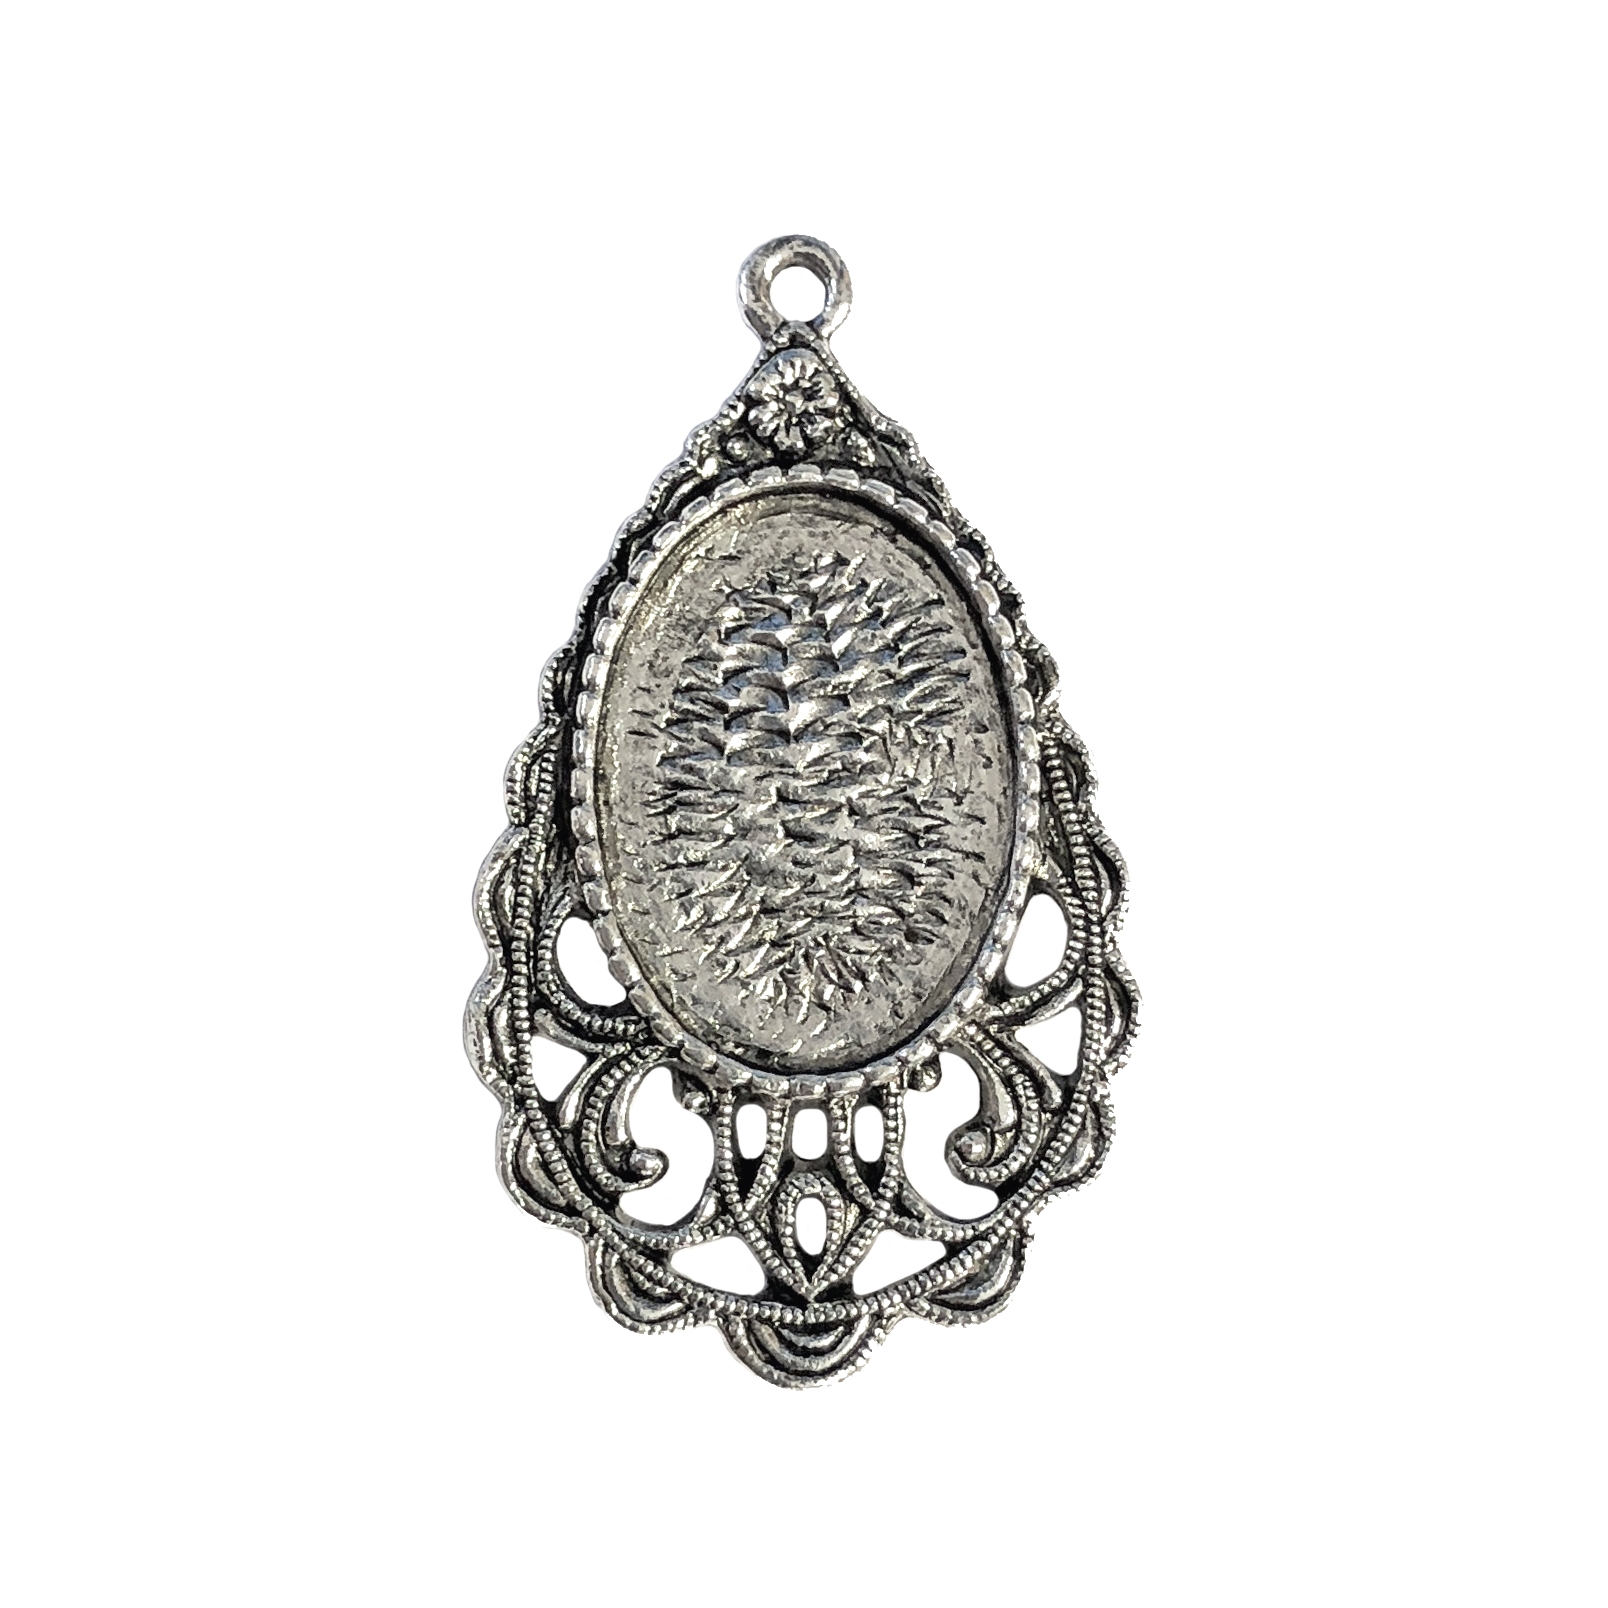 old silver, Victorian pendant, 09754, lead free pewter, B'sue by 1928, silver plated pewter, antique, vintage jewelry parts, pewter jewelry parts, nickel free finish, made in the USA, 1928 Company, designer jewelry, B'sue Boutiques